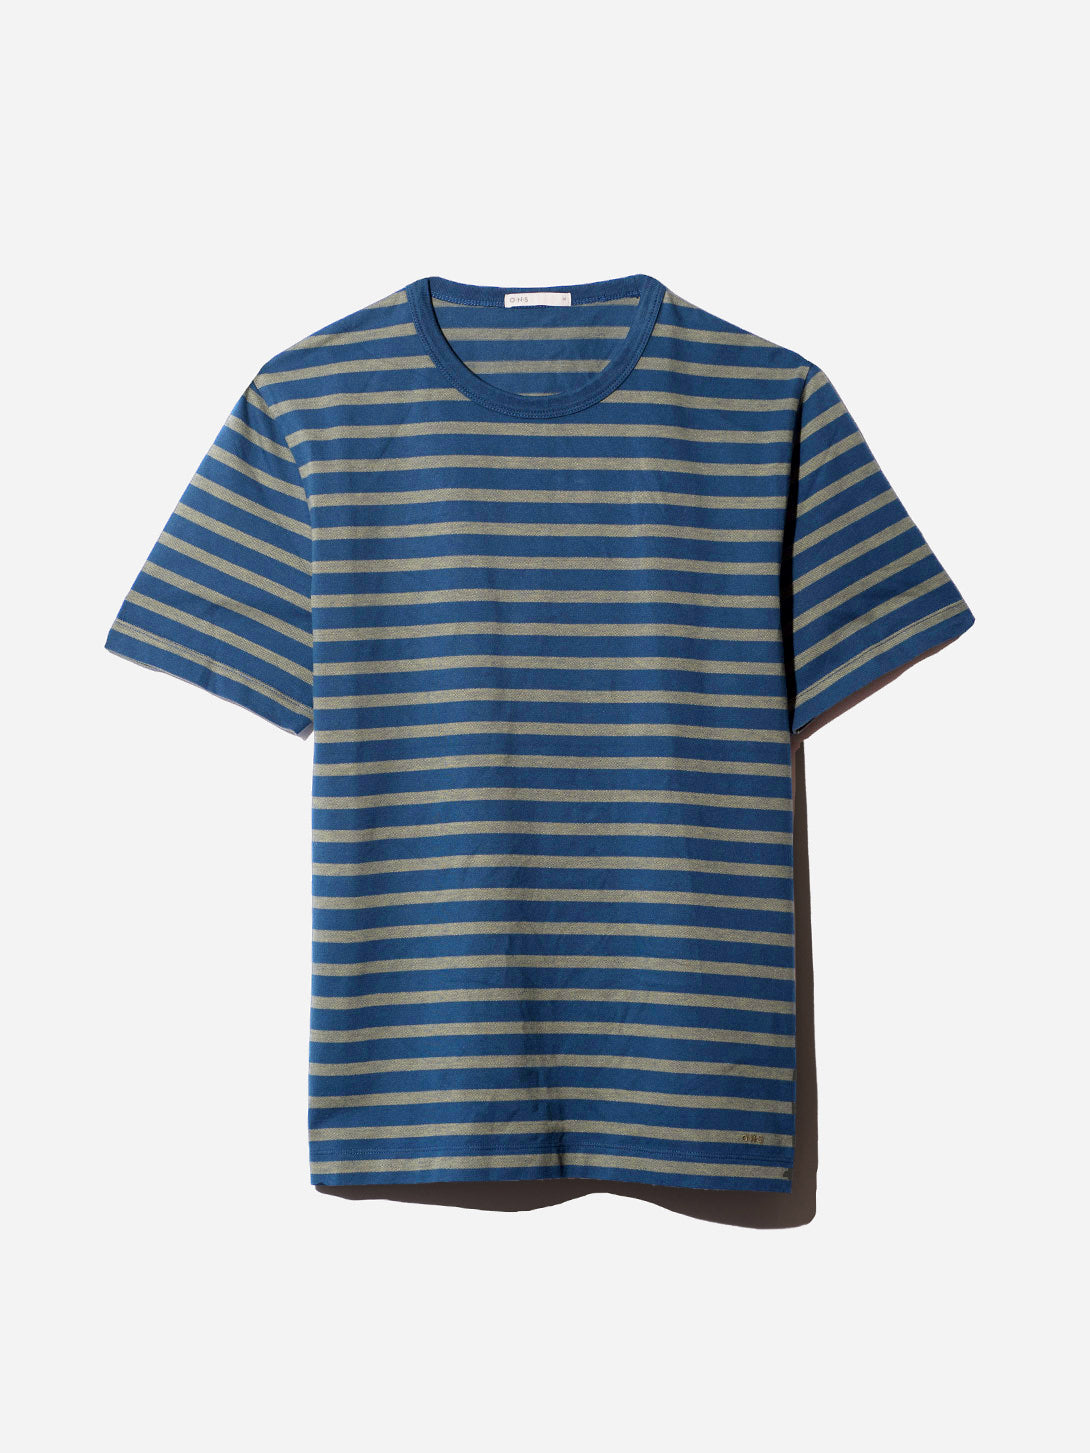 NAVY STRIPE t shirts for men calden crew neck tee ons clothing